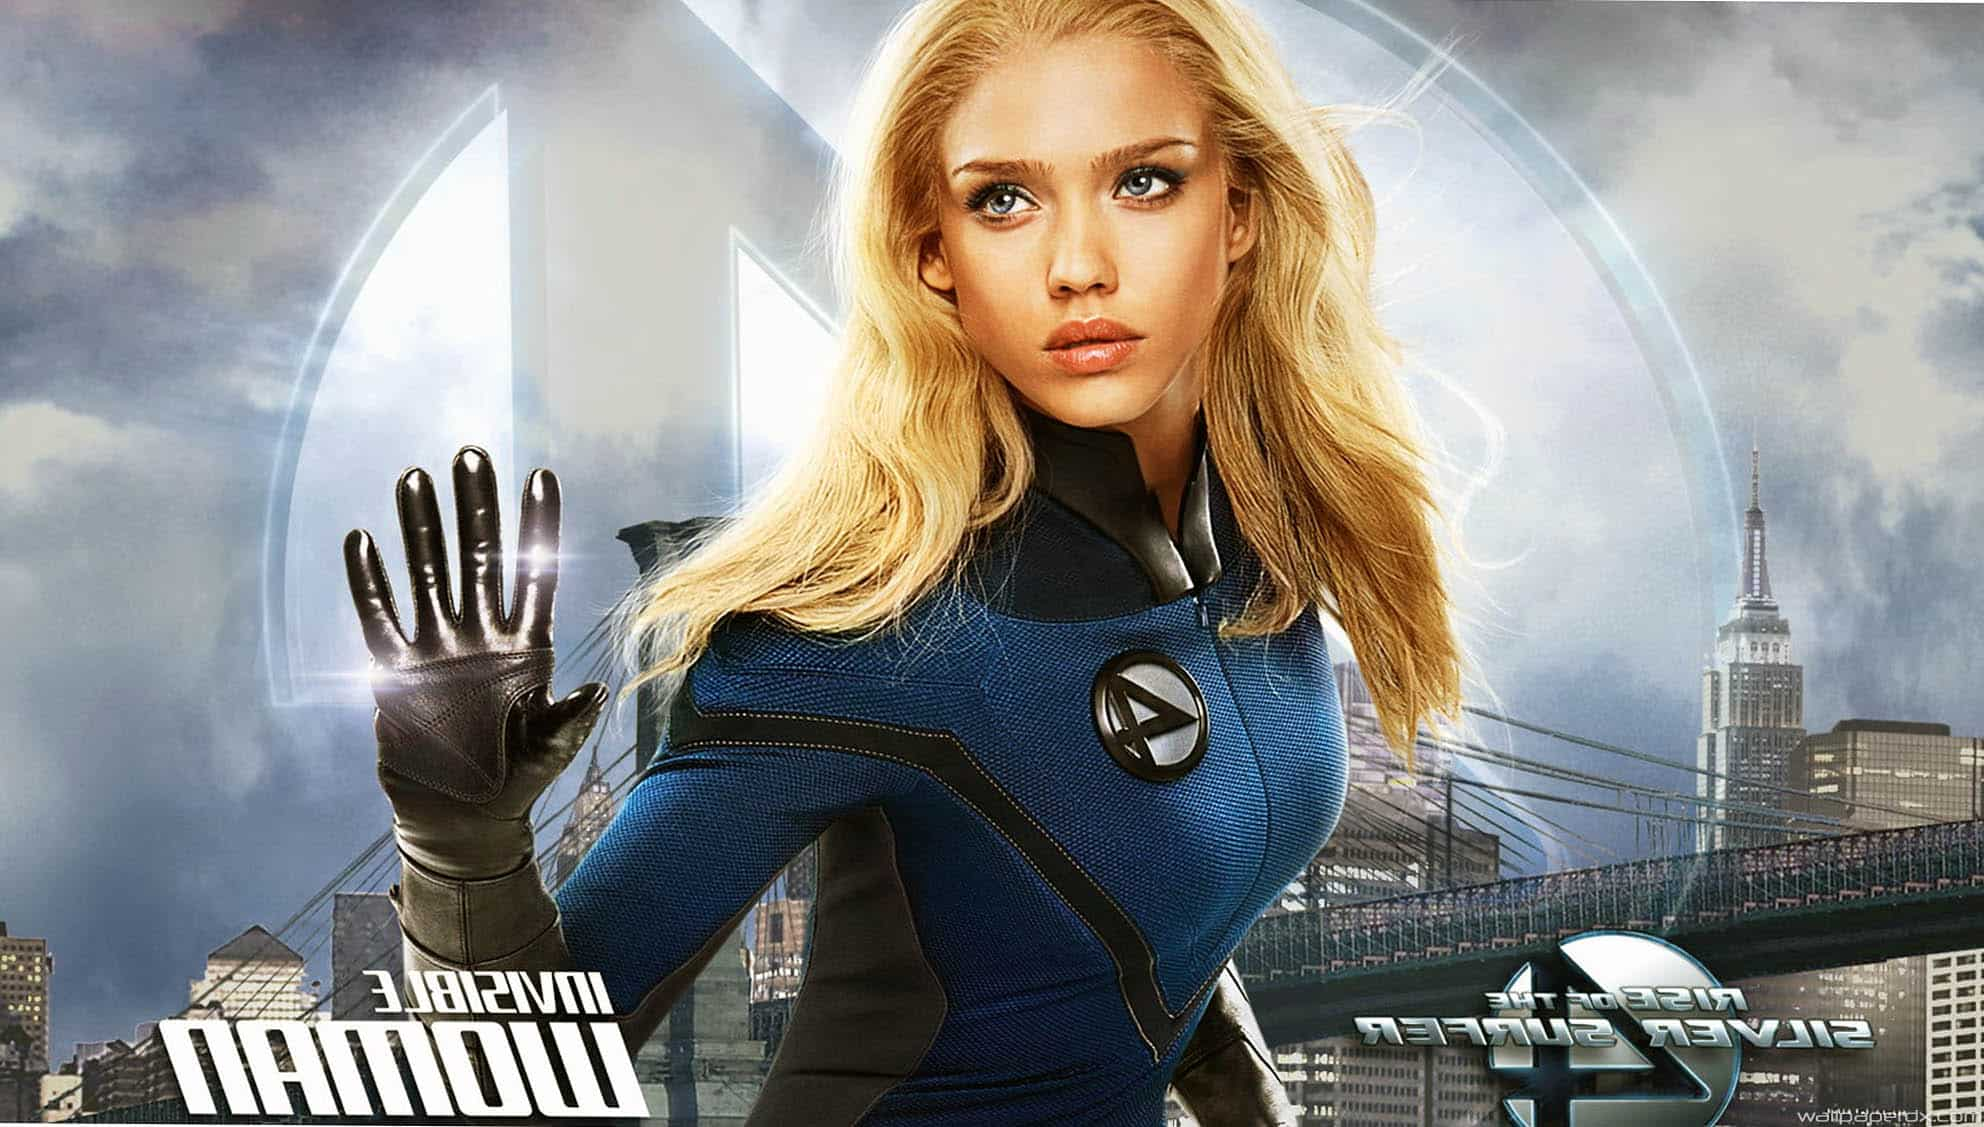 N°14 - Jessica Alba as Sue Storm / Invisible Woman